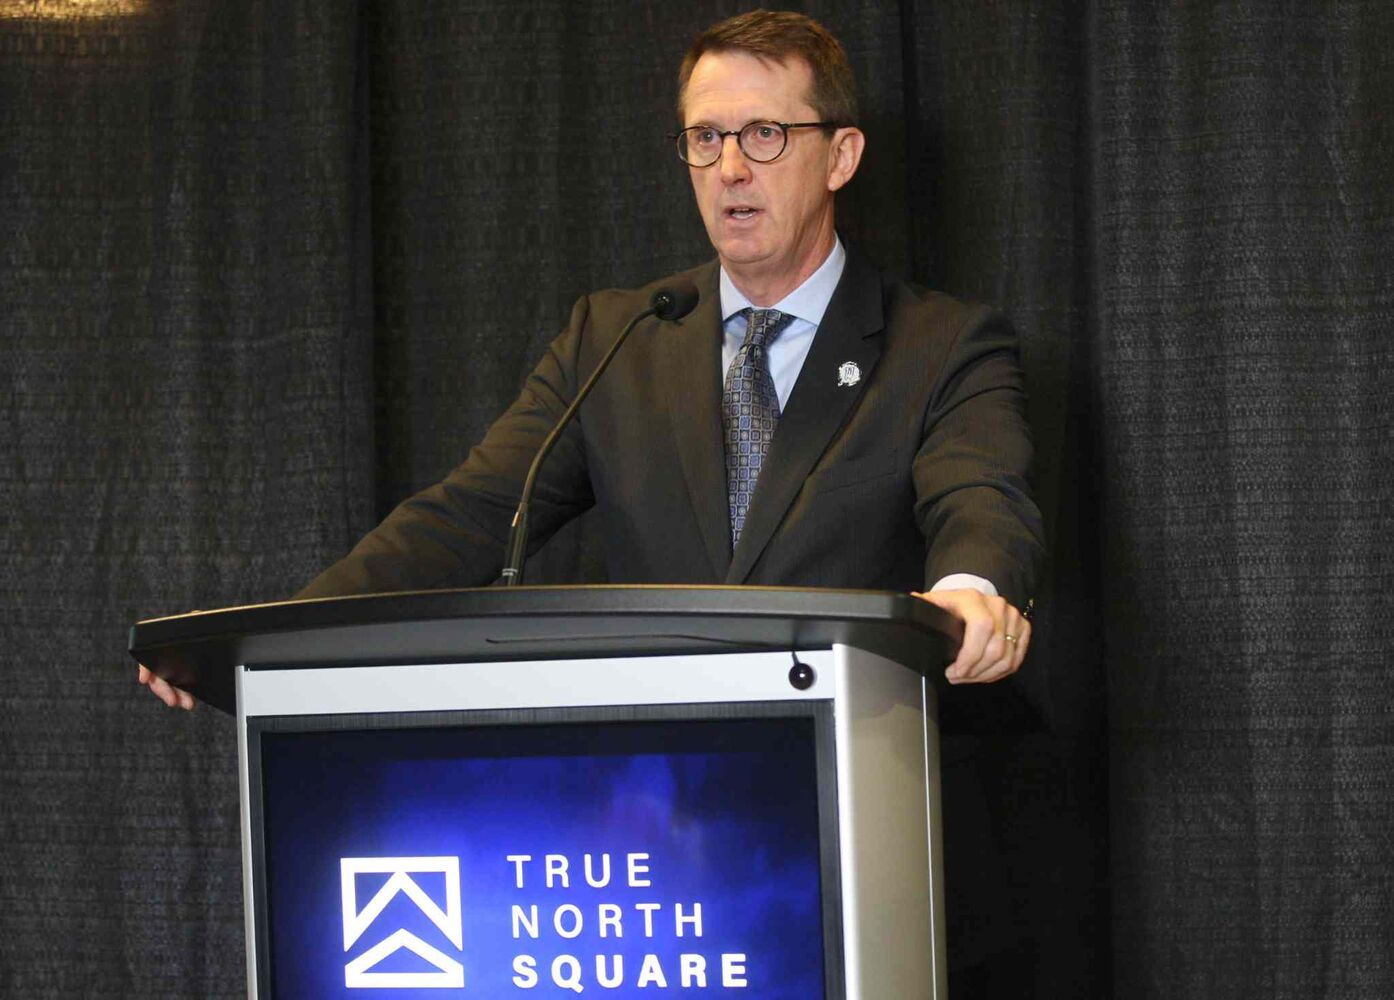 Mark Chipman at the the news conference for True North Square. (JOE BRYKSA / WINNIPEG FREE PRESS)